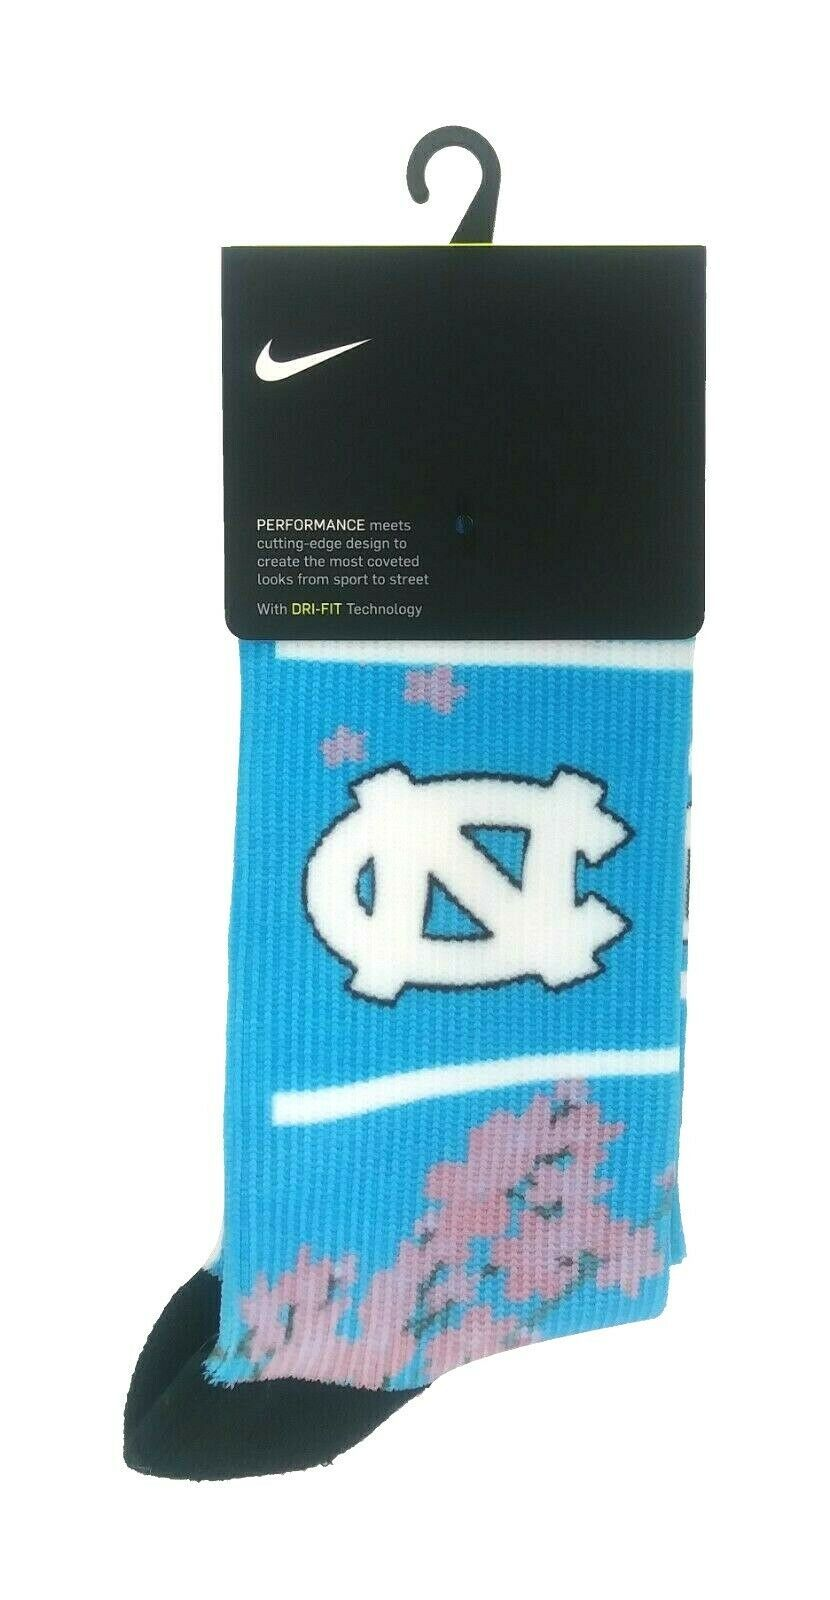 Primary image for NIKE Dri-Fit Performance North Carolina Tar Heels Socks sz M Medium (6-8) Blue